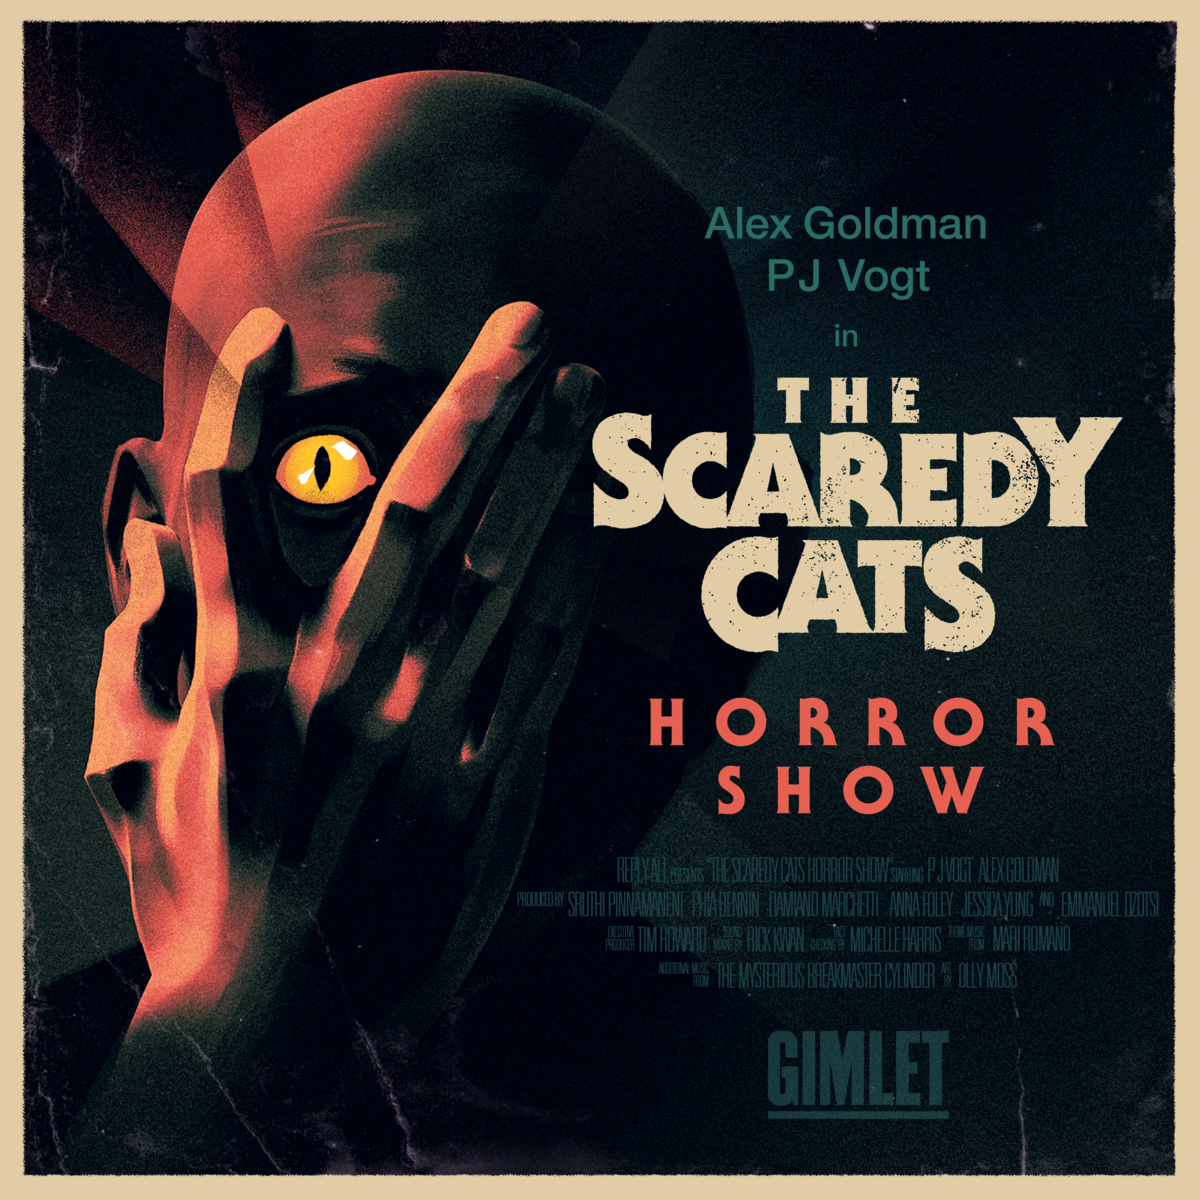 Show artwork for The Scaredy Cats Horror Show